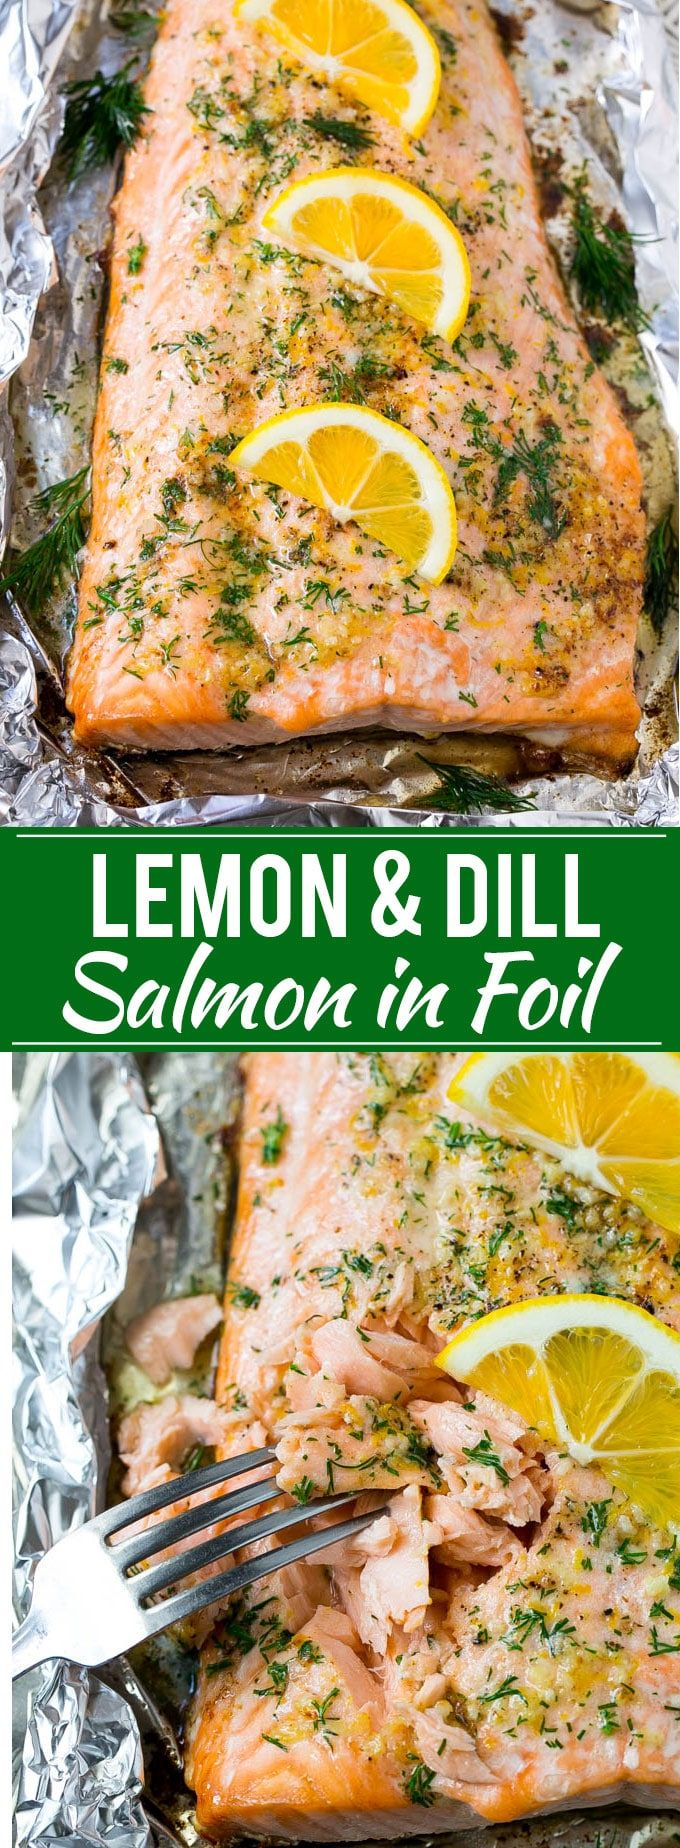 1 Salmon Fillet 1 1 2 2 Pounds 4 Tablespoons Butter Melted 2 Teaspoons Minced Garlic 2 Teaspoons Lem Easy Salmon Recipes Baked Salmon Recipes Dill Recipes